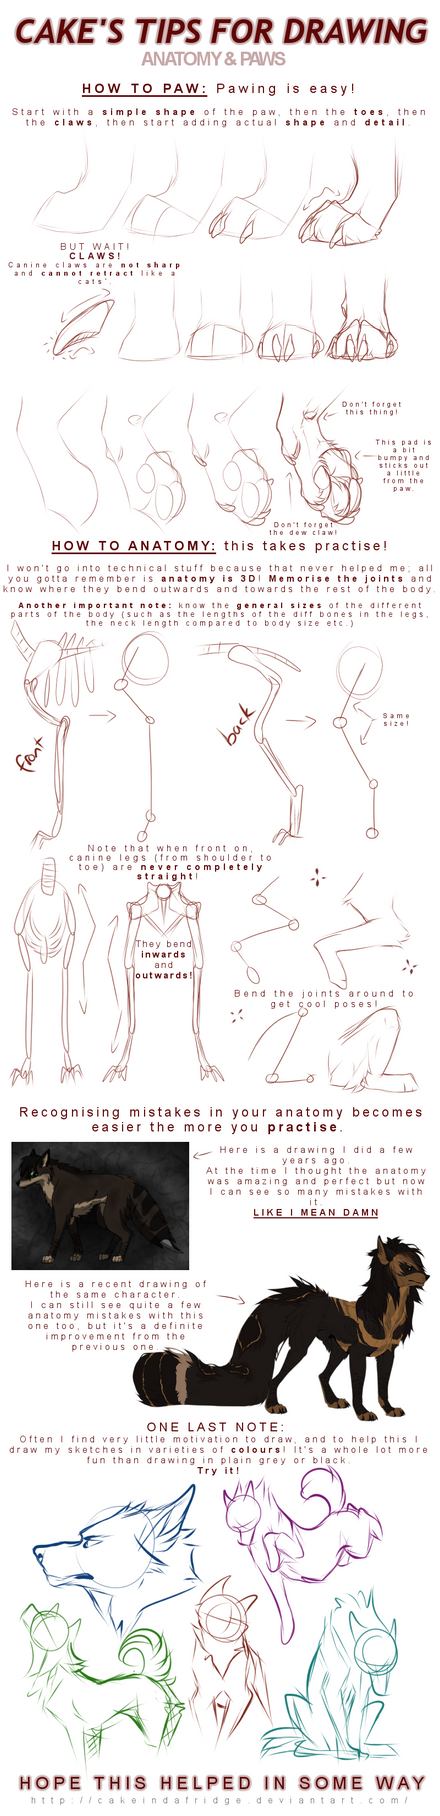 Cake Art Techniques : tutorialCake s tips for drawing: PAWS + ANATOMY by ...